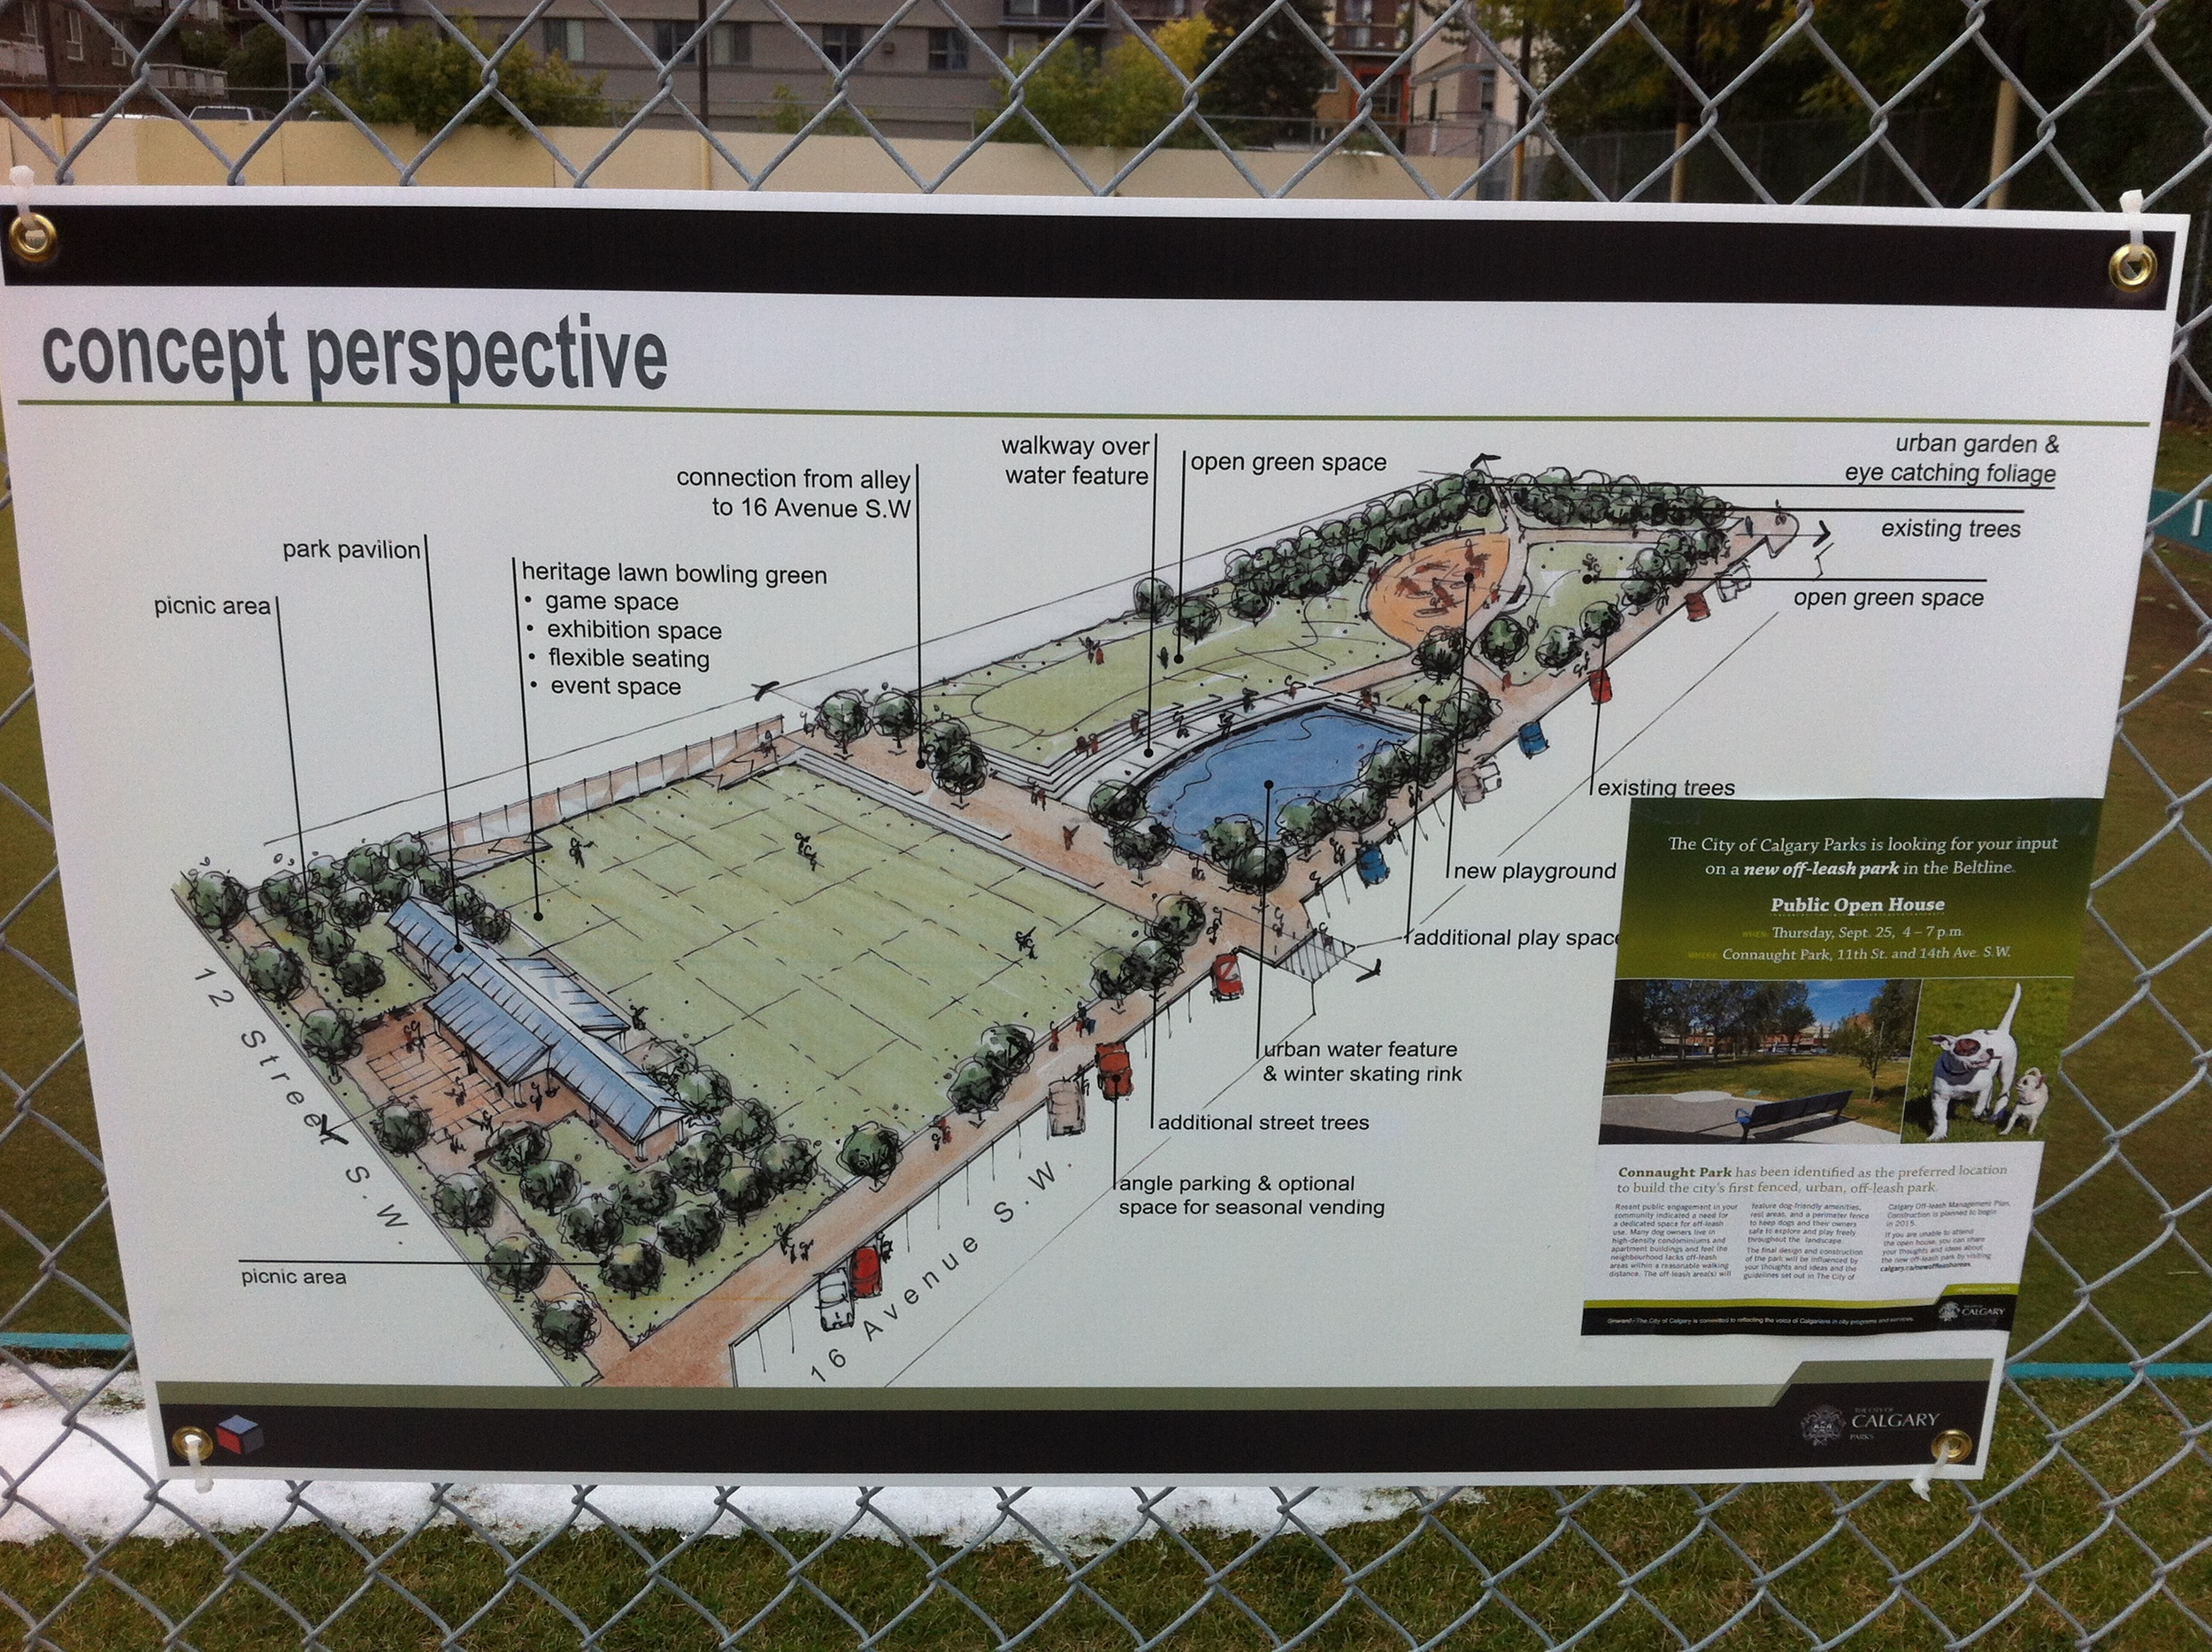 Concept plans developed by Ground3 Landscape Architects for the old Calgary Lawn Bowling site. This is just one of several information panels on the fence allowing everyone to know what is being planned. It doesn't get more transparent than this.